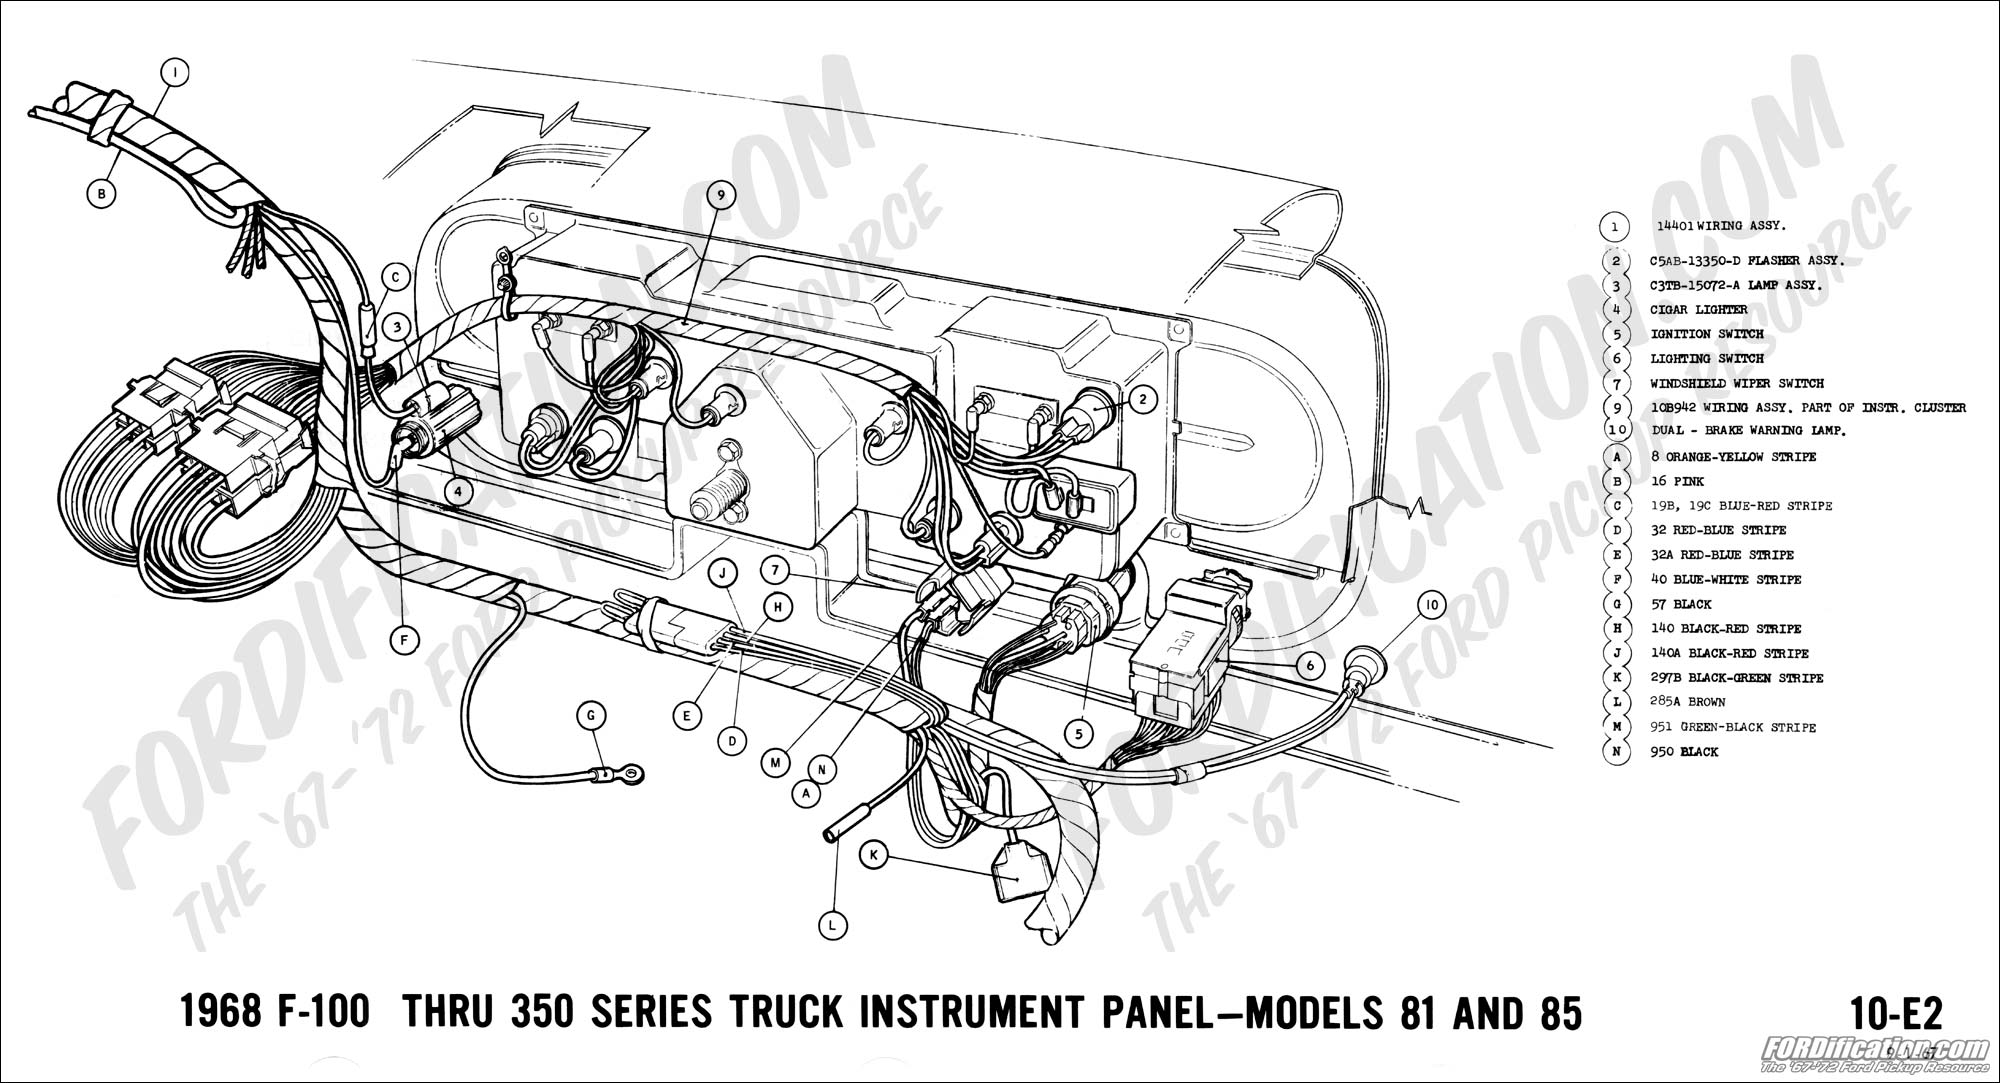 68 04 ford truck technical drawings and schematics section h wiring 1999 Ford F-250 Wiring Diagram at n-0.co